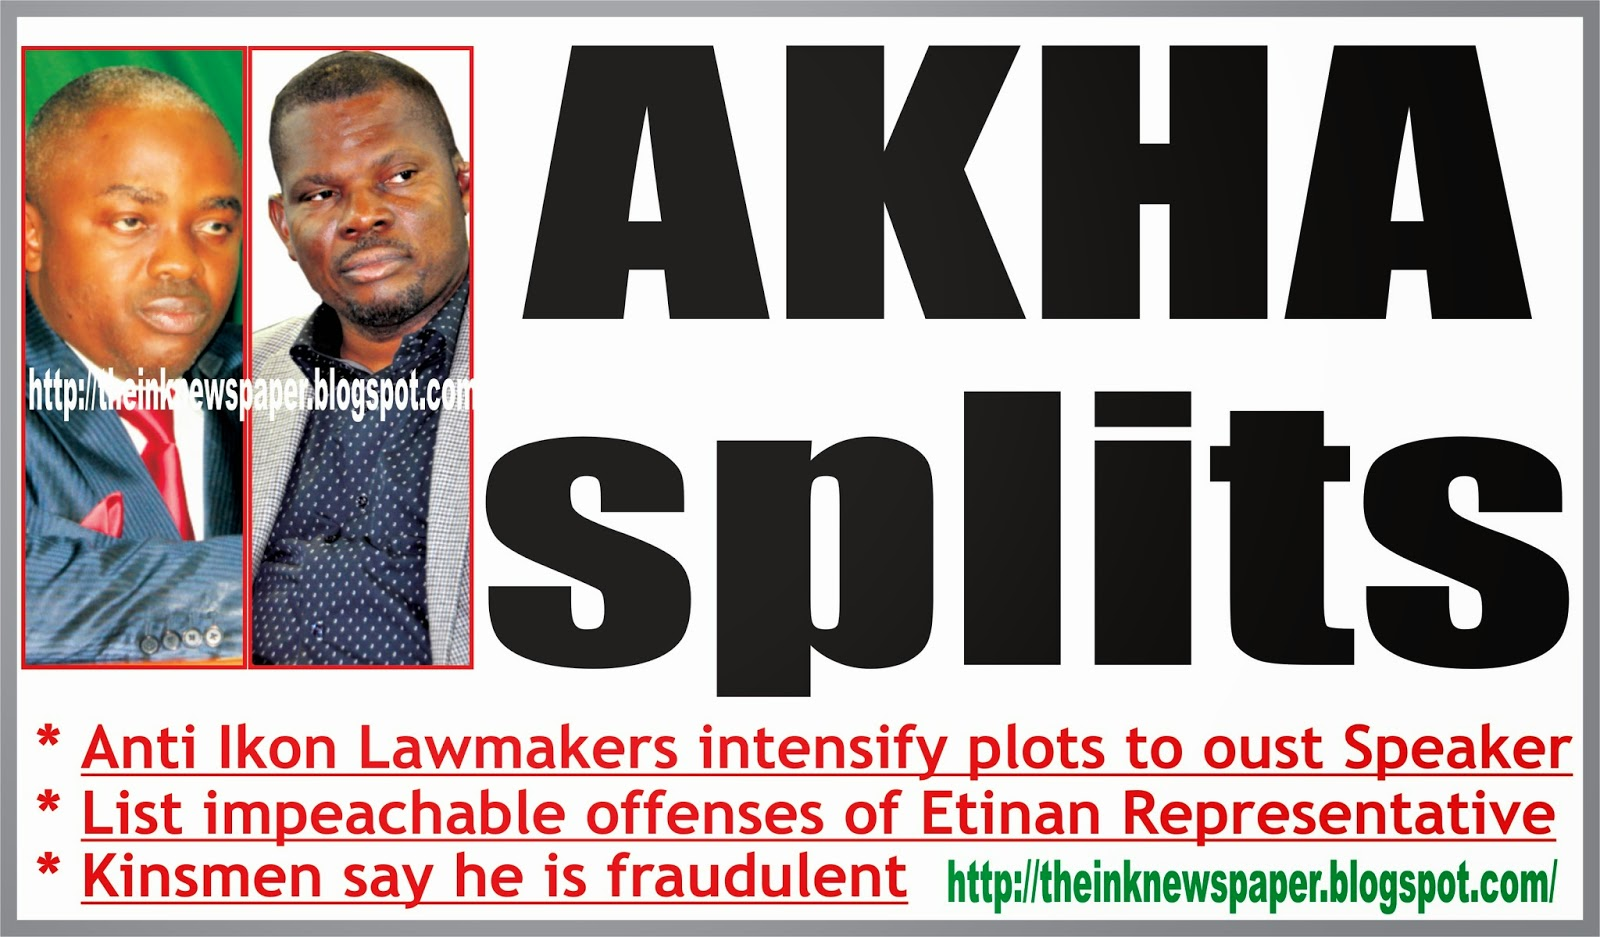 AKHA Splits *Anti Ikon lawmakers intensify plot to oust Speaker